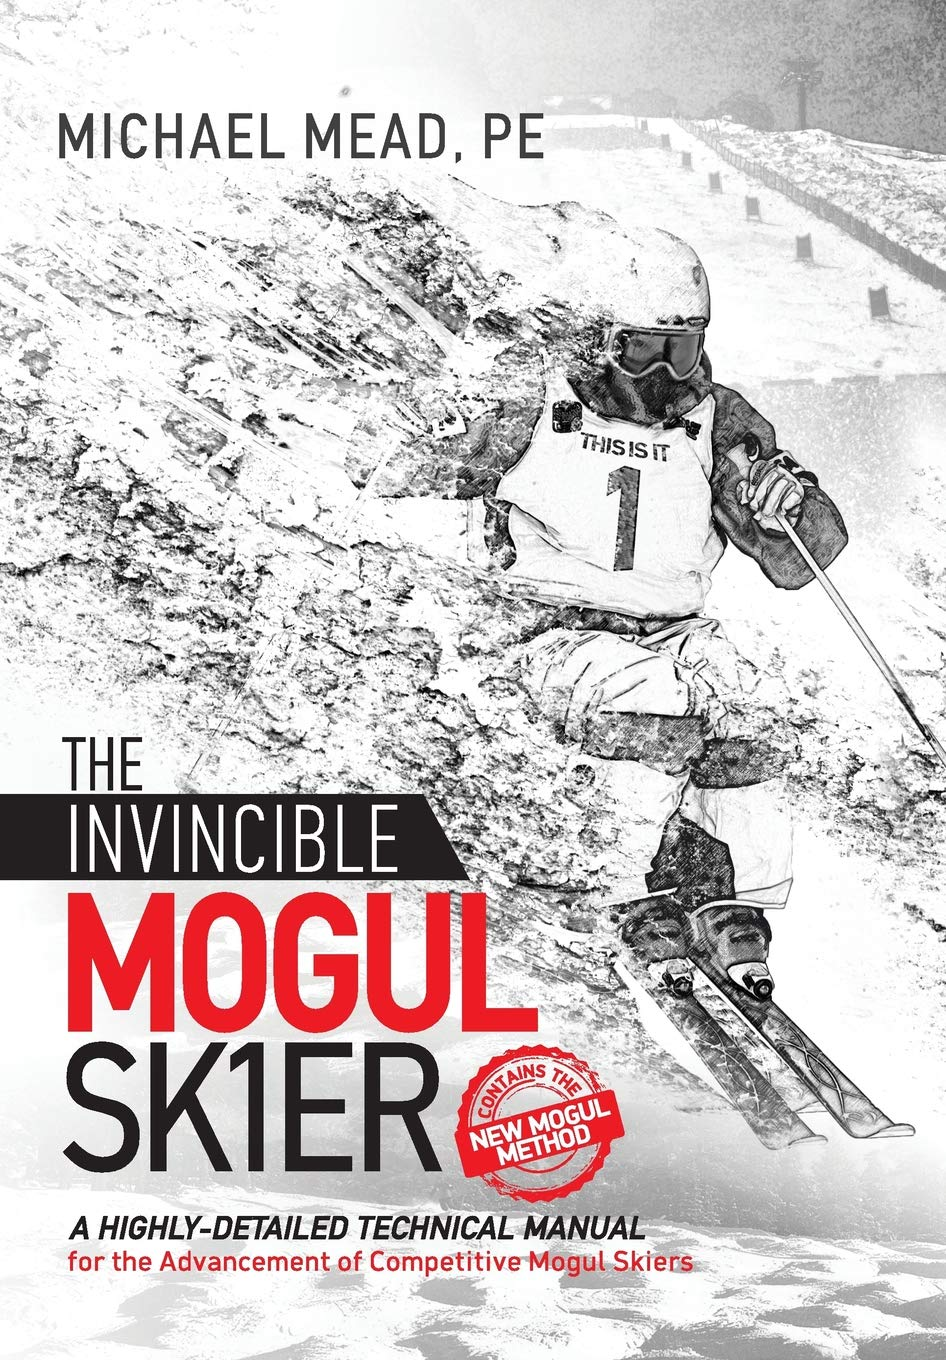 The Invincible Mogul Skier: A Highly-Detailed Technical Manual for the Advancement of Competitive Mogul Skiers by Michael L Mead